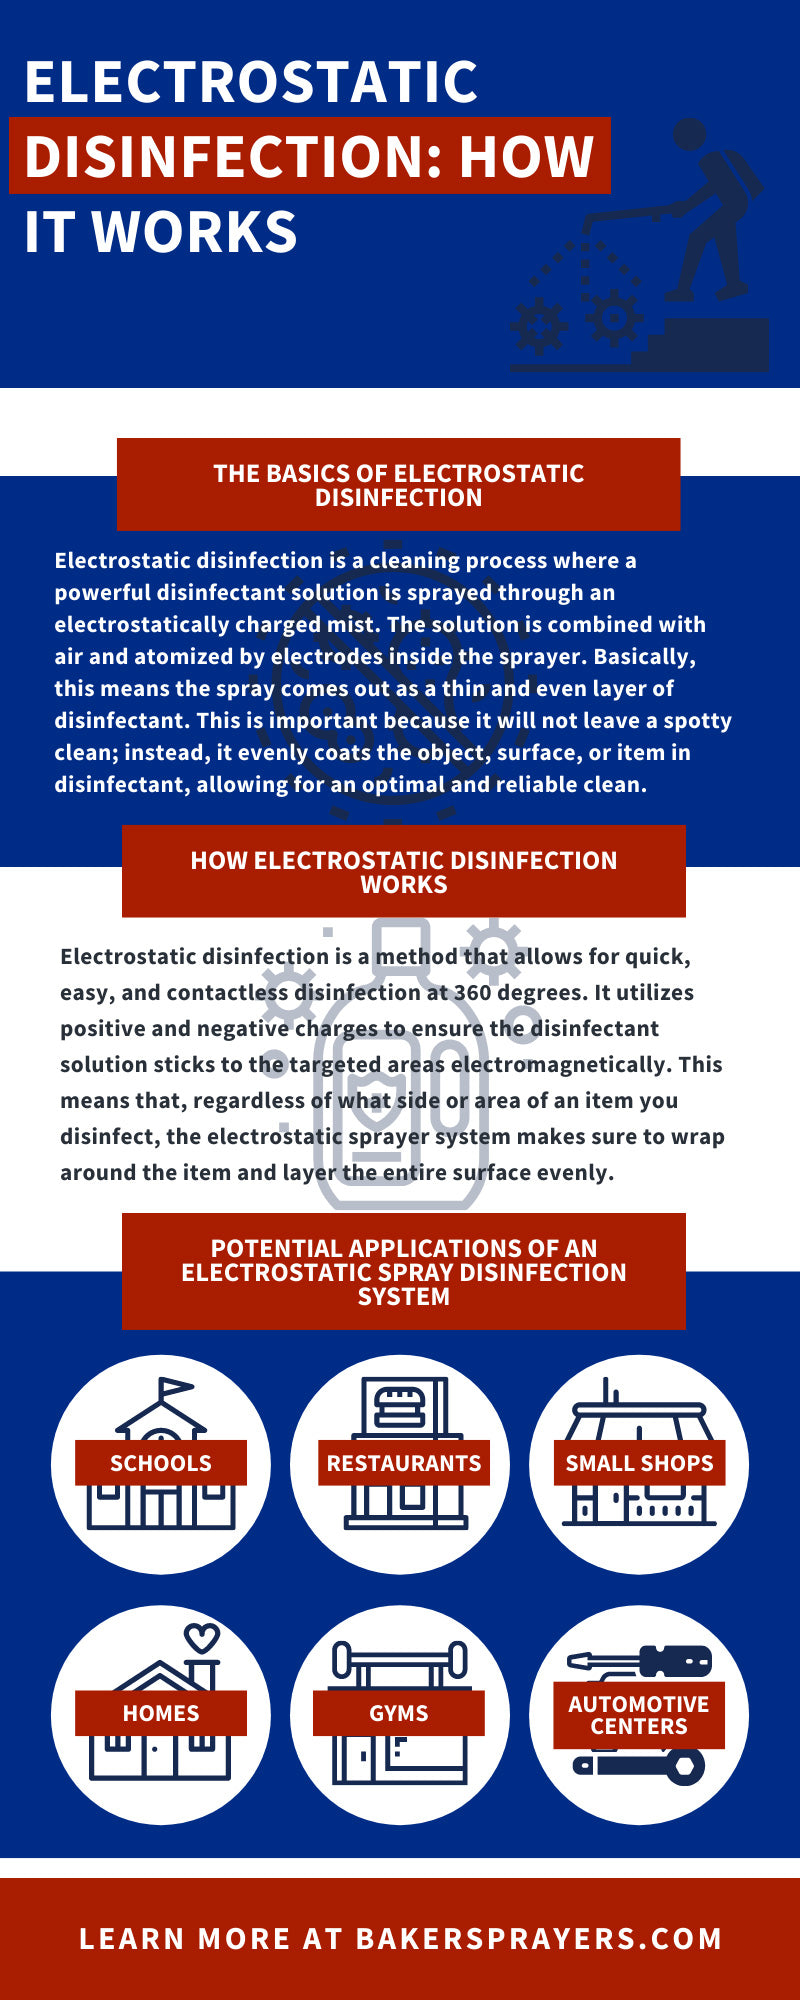 Electrostatic Disinfection: How It Works